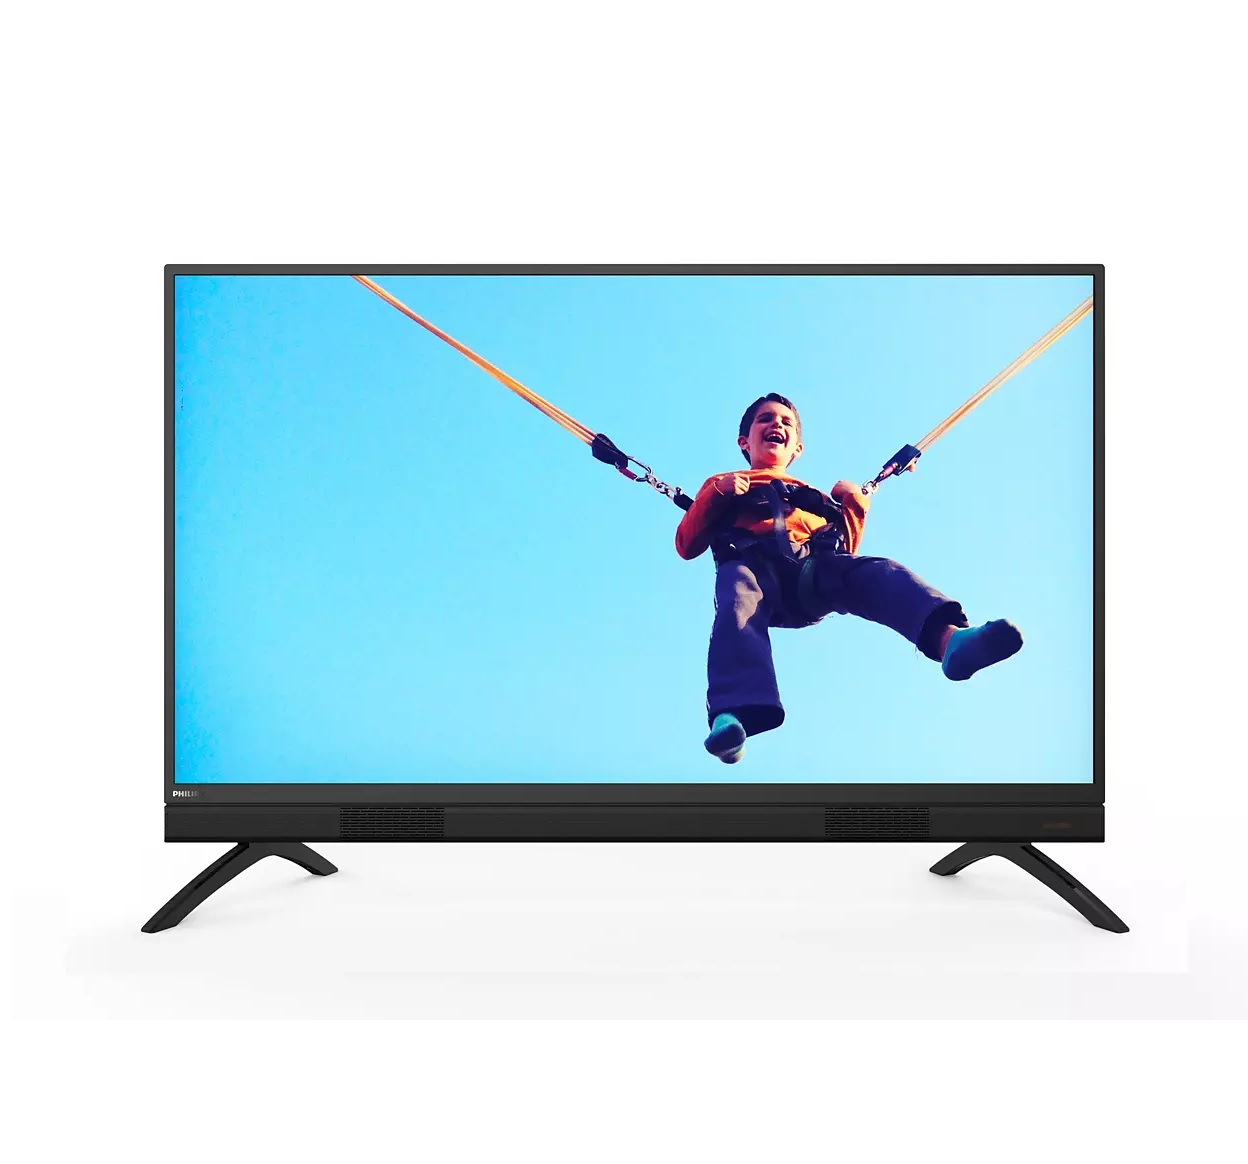 Philips 43PFT5853 43inch FHD LED TV